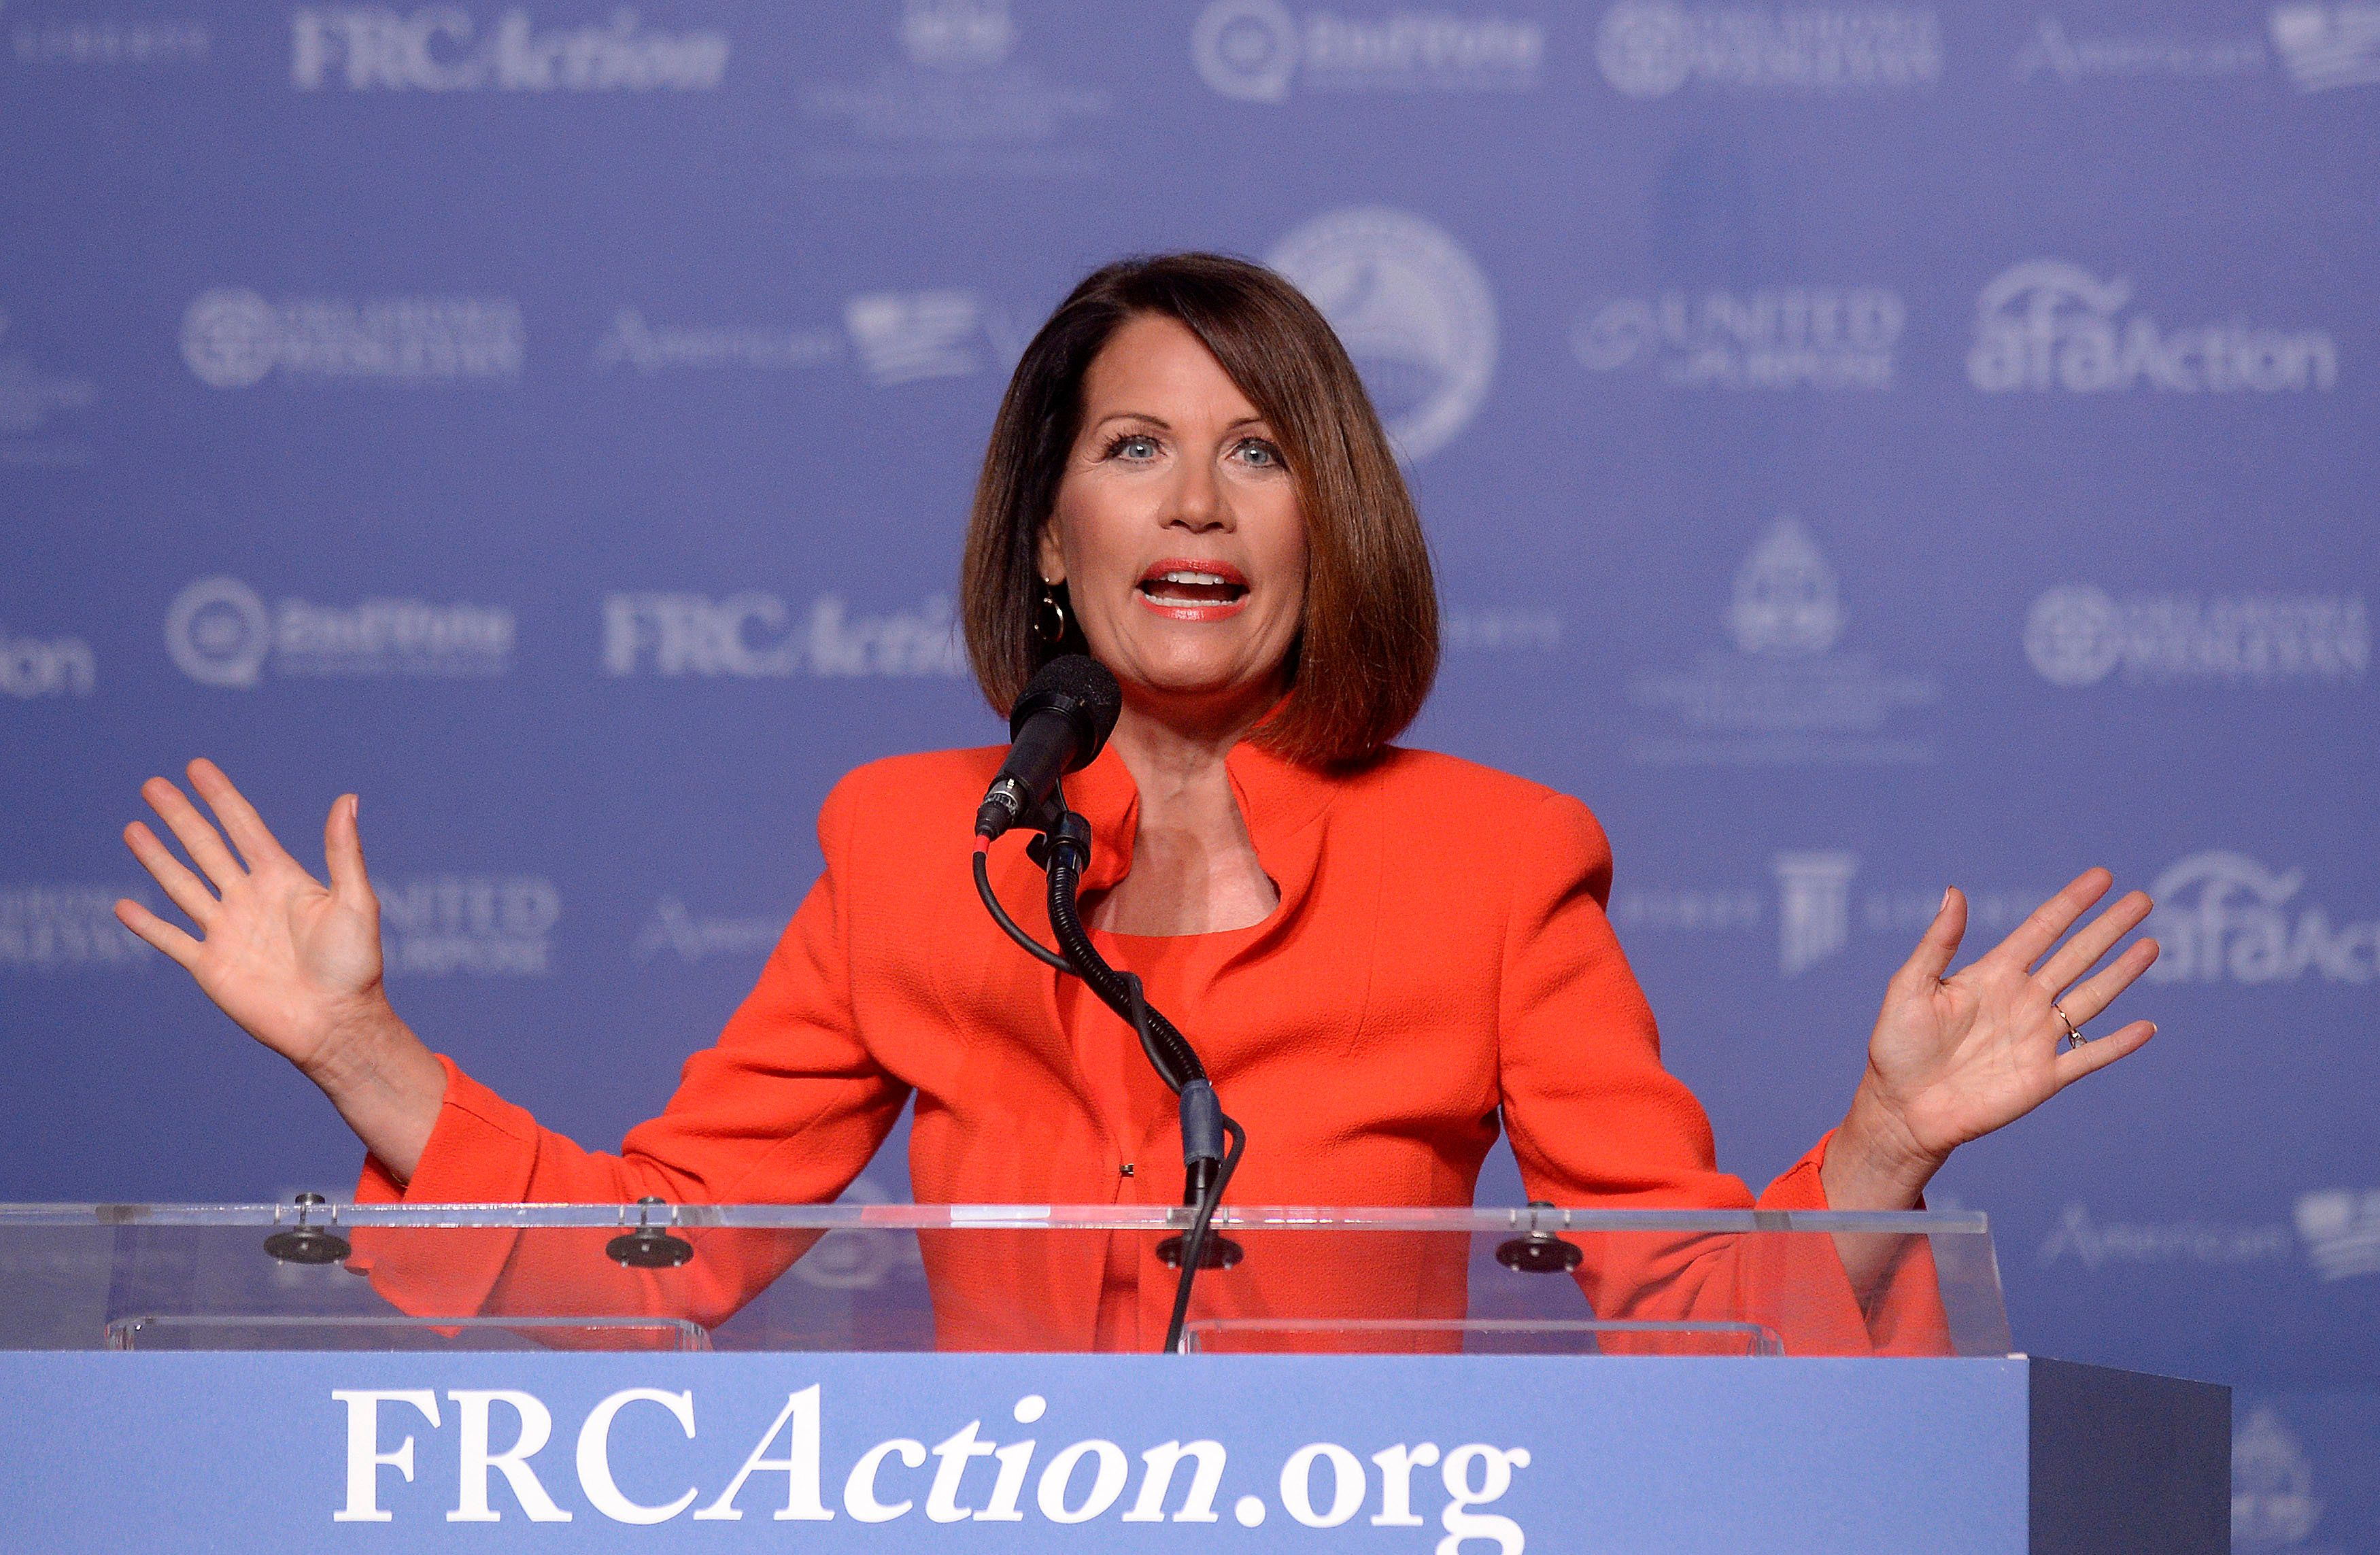 Rep. Michele Bachmann speaks at the 11th annual Values Voter Summit, in Washington, D.C., U.S., on Friday September 9, 2016. .Photo by Olivier Douliery/Abaca